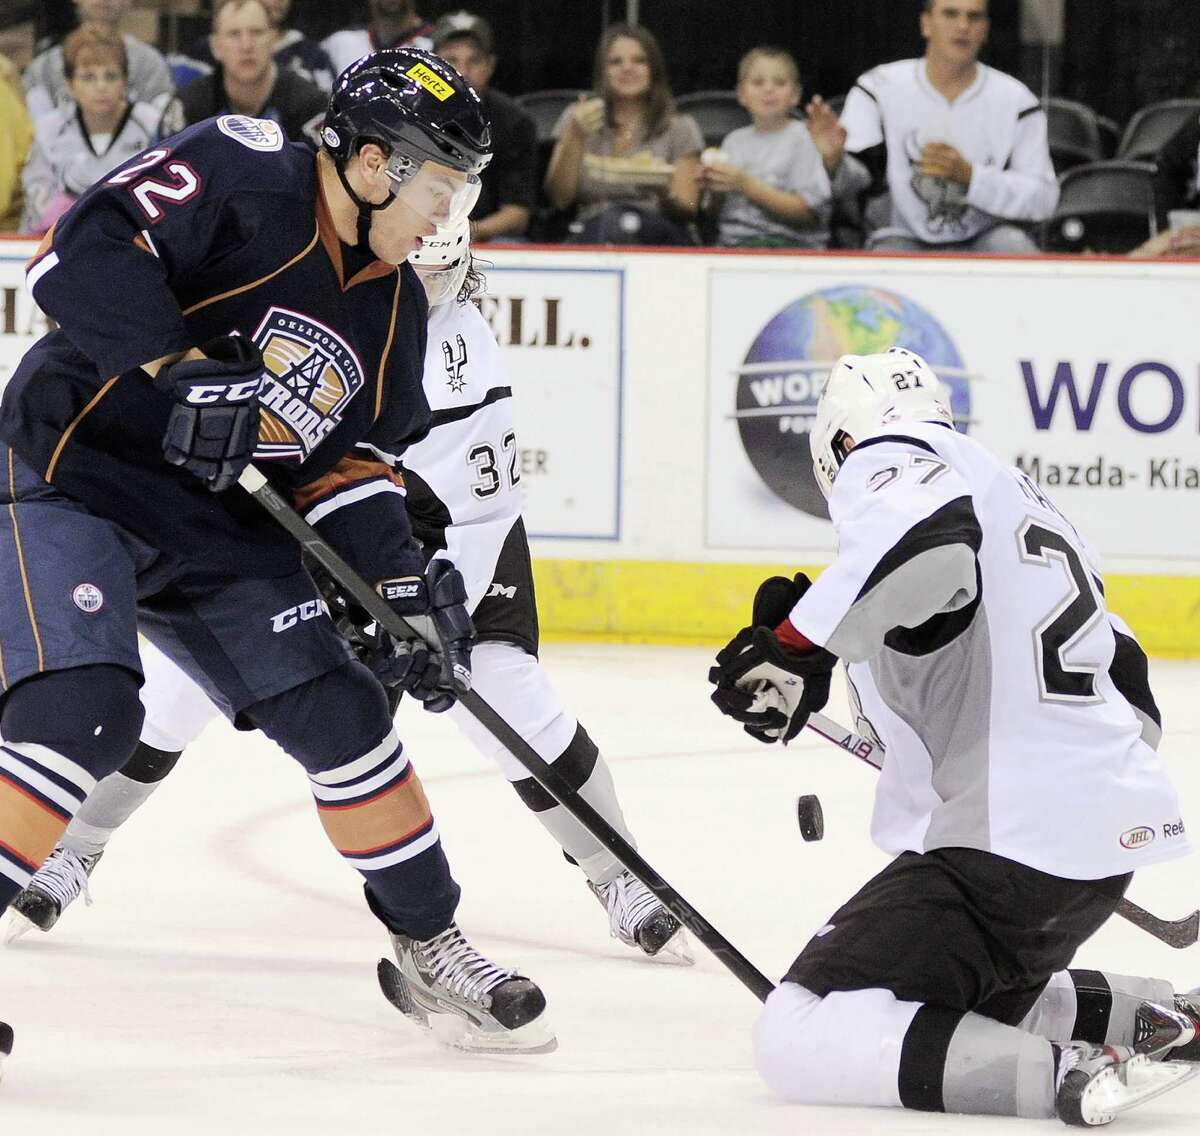 Oklahoma City Barons' Taylor Hall, left, battles San Antonio Rampage's Greg Rallo for the puck during the third period of an AHL hockey game, Sunday, Nov. 4, 2012, in San Antonio. San Antonio won 2-0.